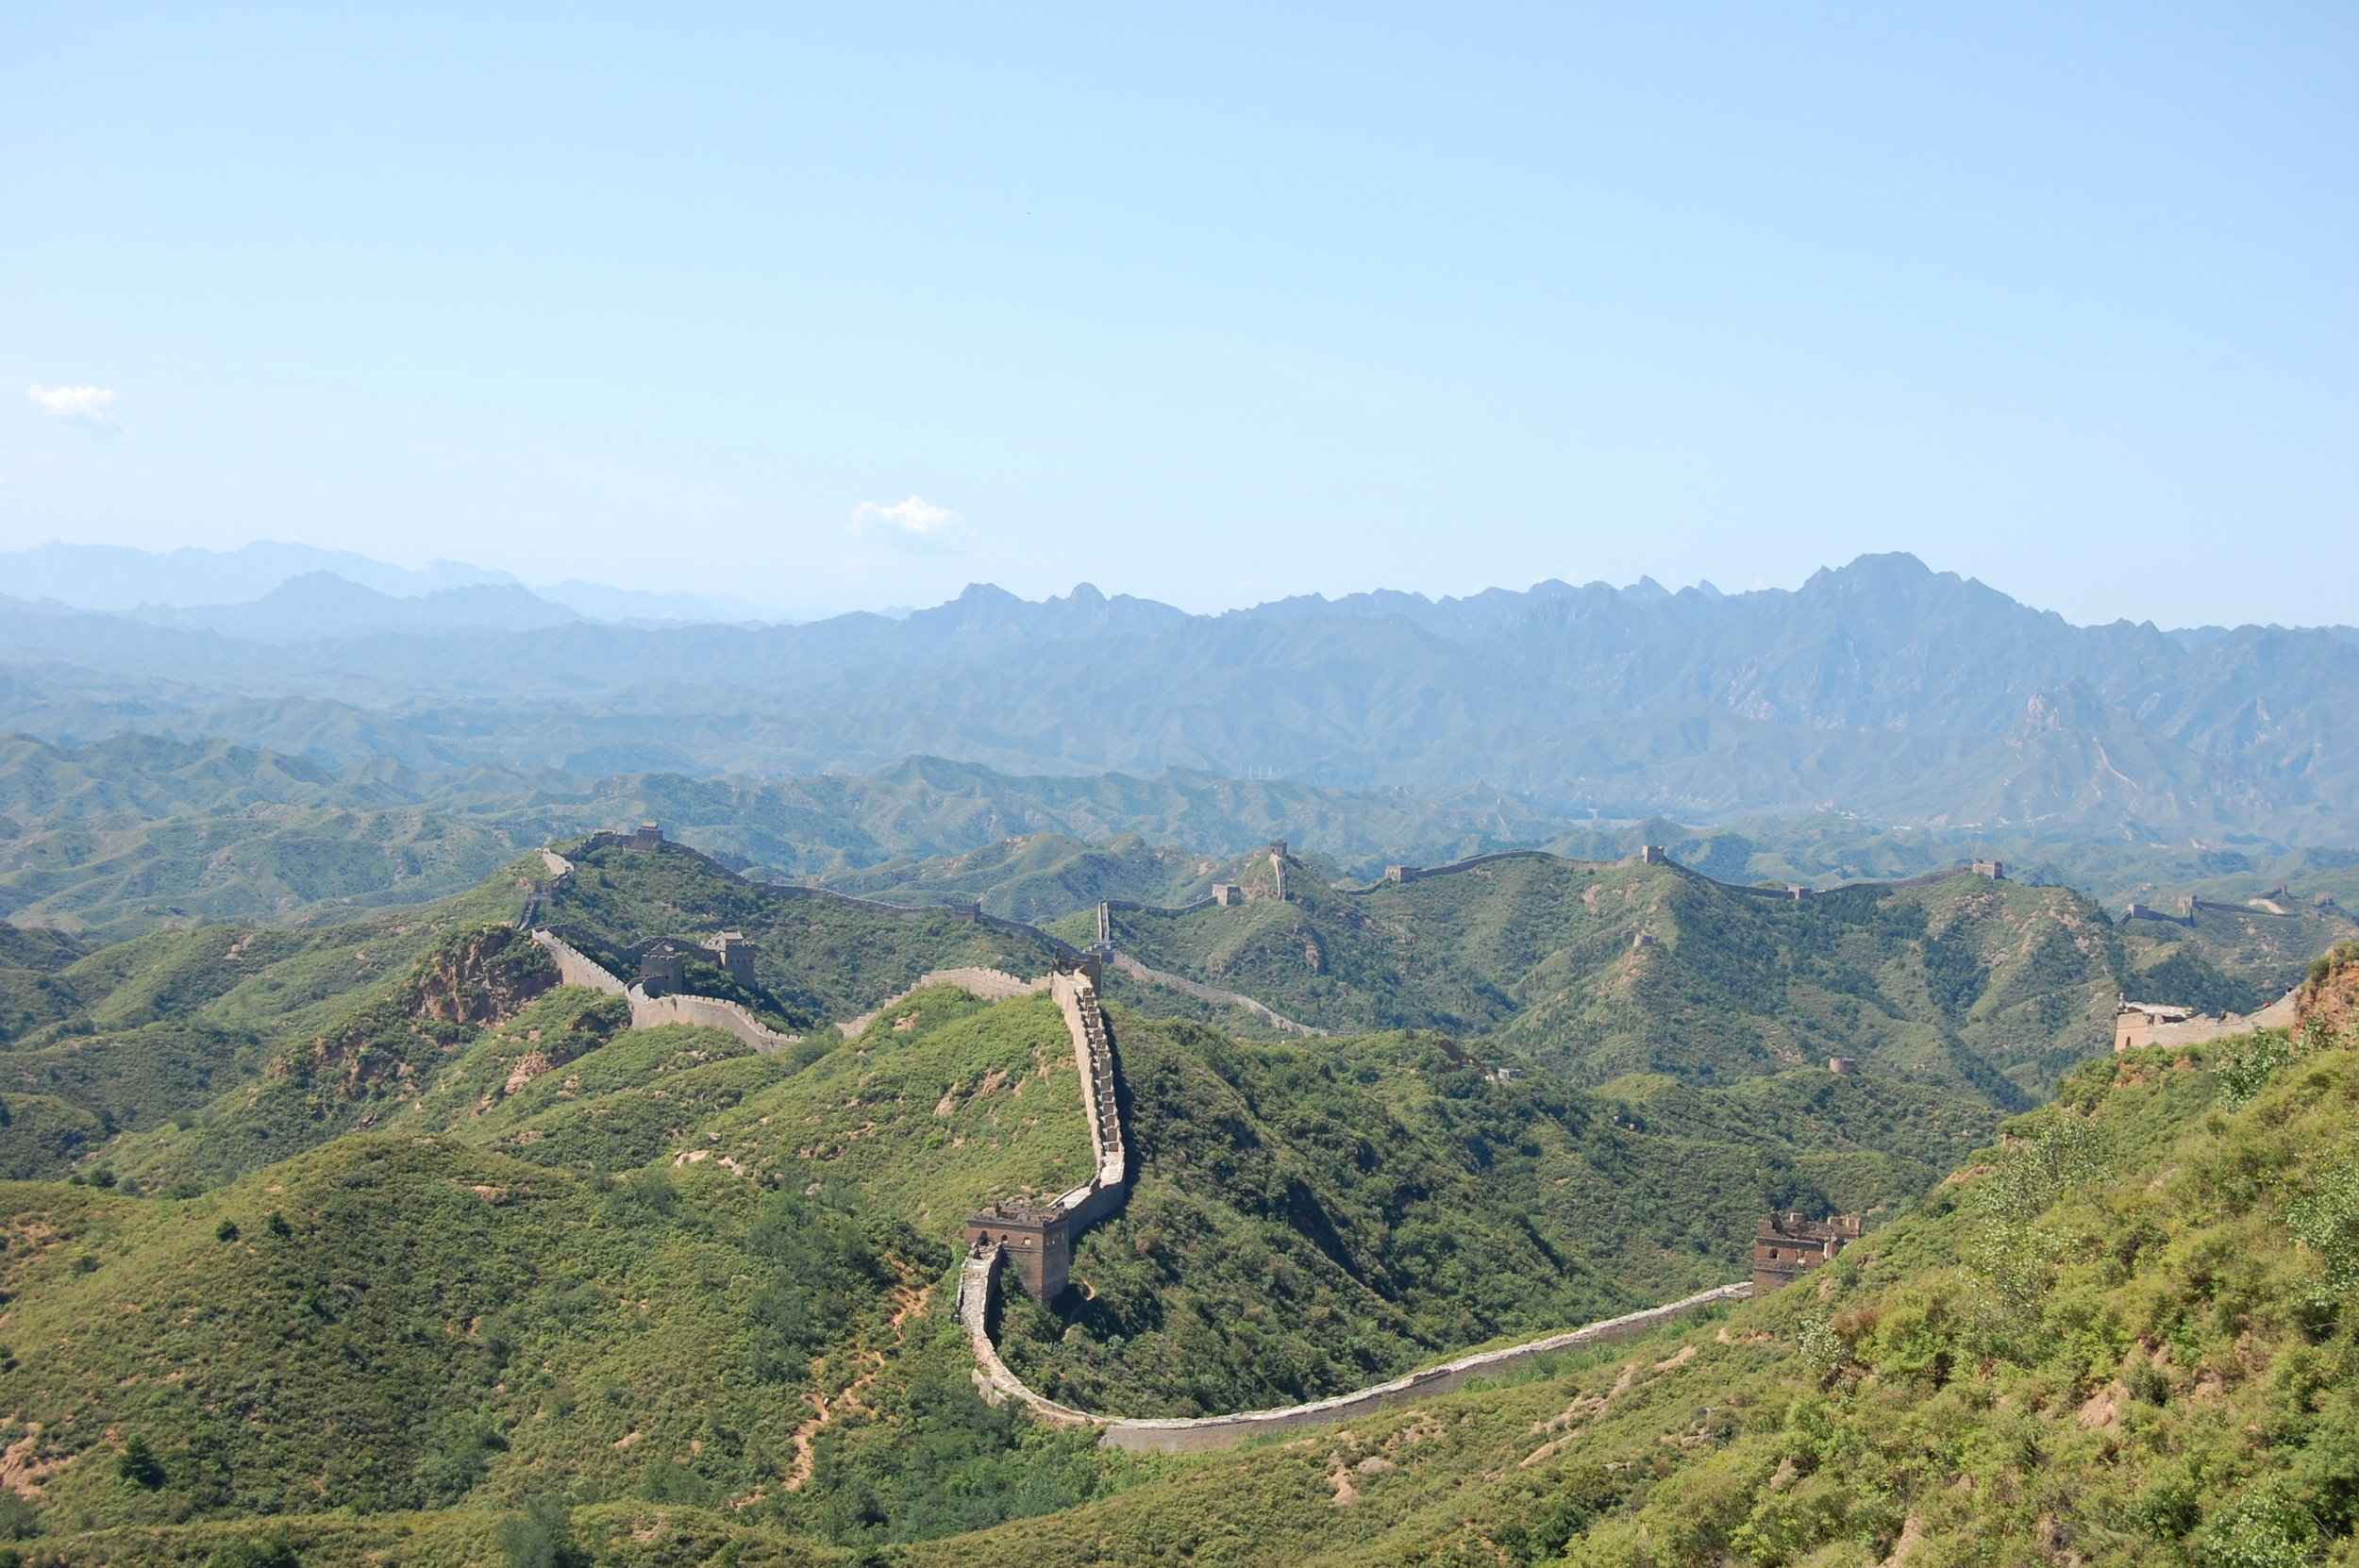 The Great Wall stretches to the horizon (Jinshanling Section, Beijing)